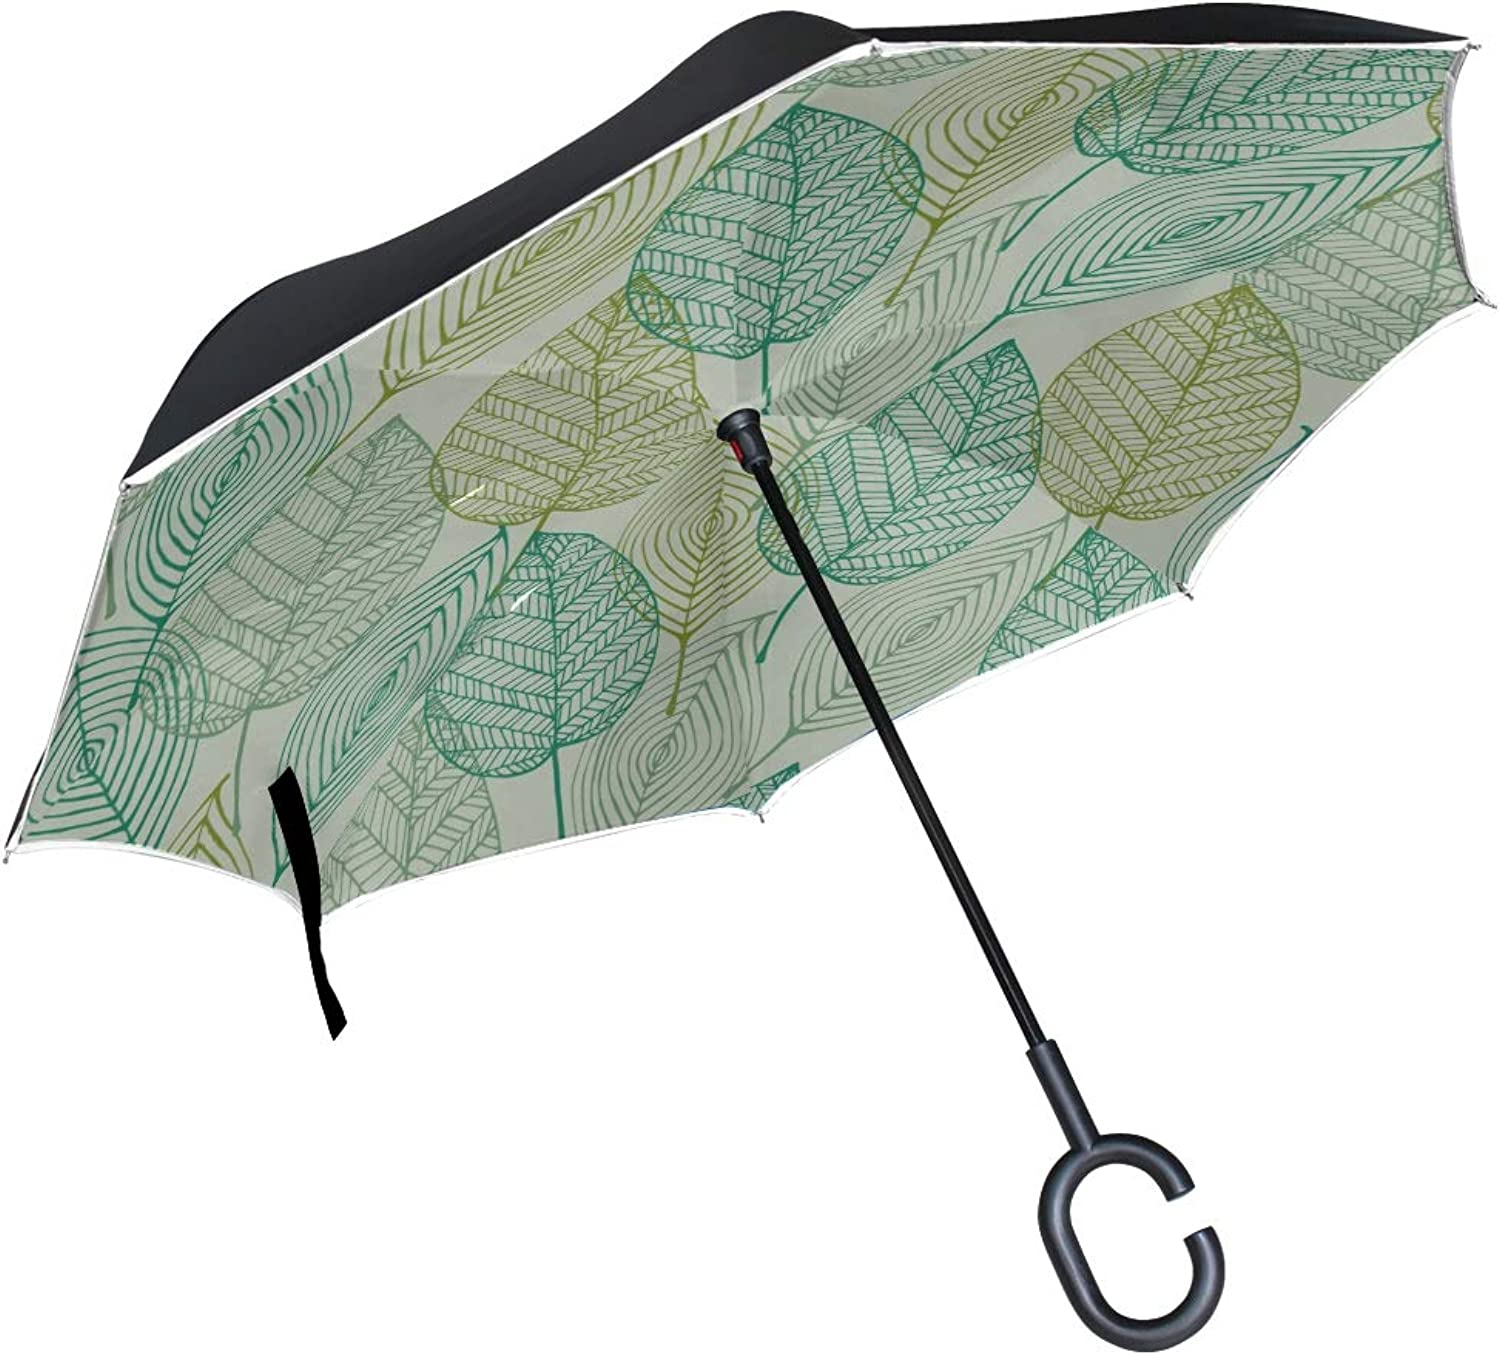 Double Layer Ingreened Leaf Green Leaf color Plant Spring Vitality Natural Embroidery Umbrellas Reverse Folding Umbrella Uv Predection Straight Umbrella for Car Rain Outdoor with CShaped Handle